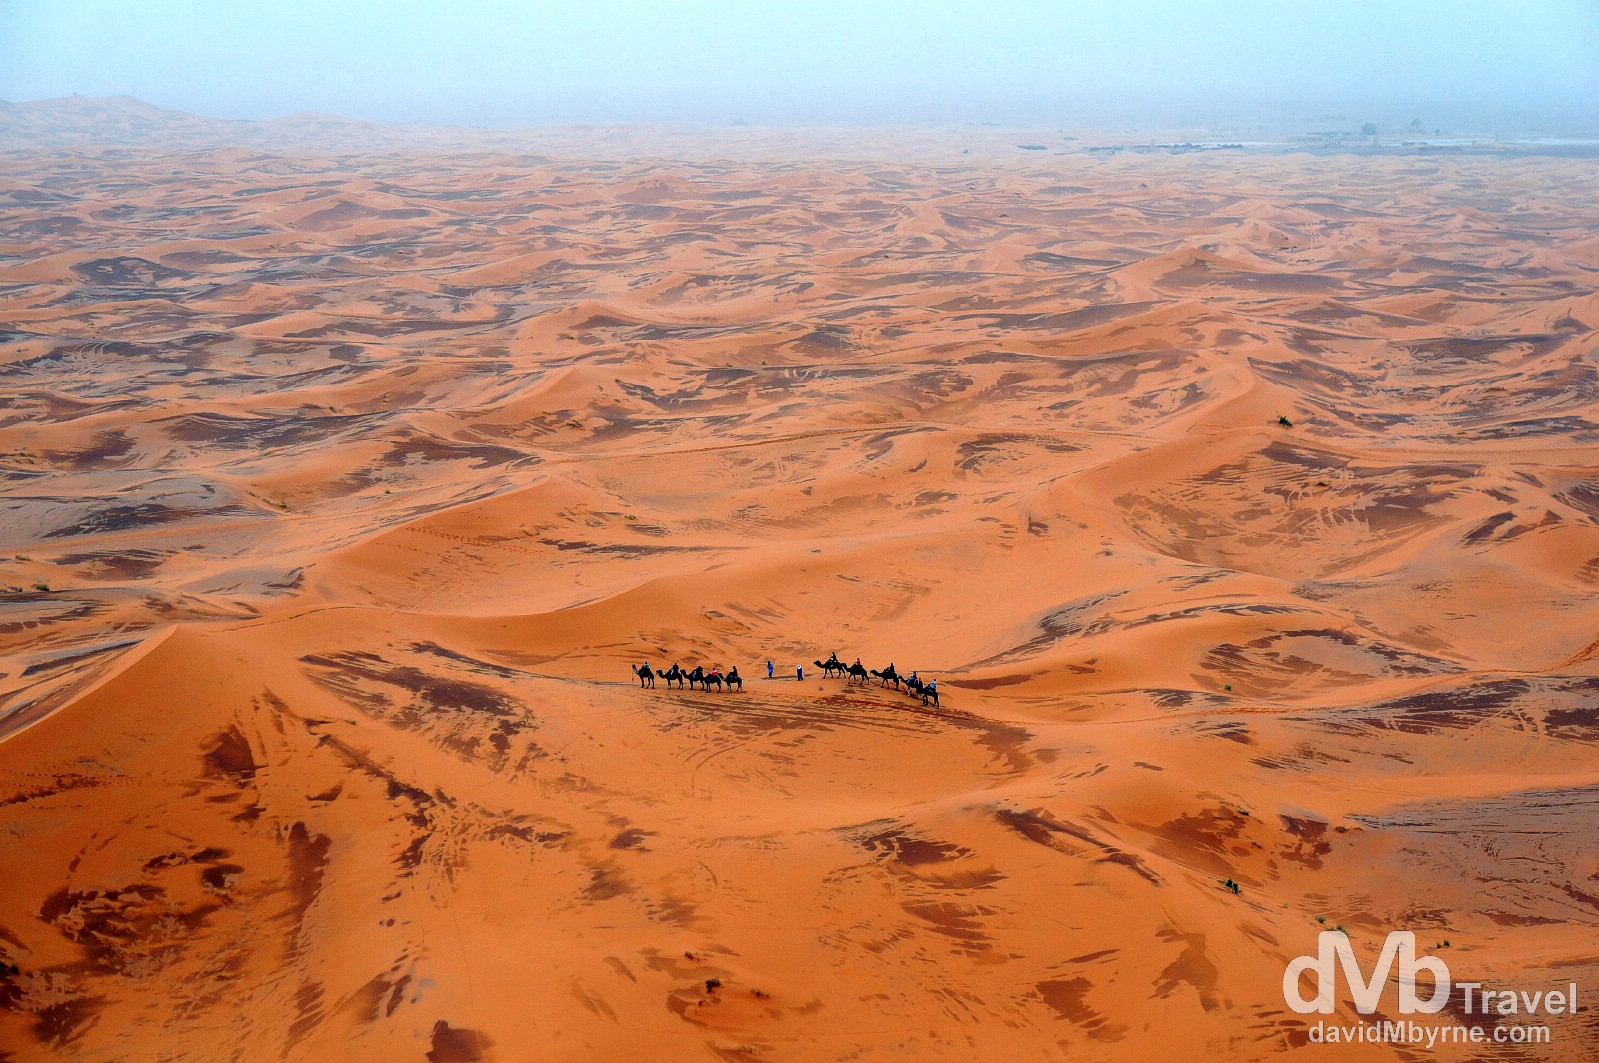 A sunset camel train as seen from on high in the desert of Erg Chebbi, Morocco. May 18th, 2014.